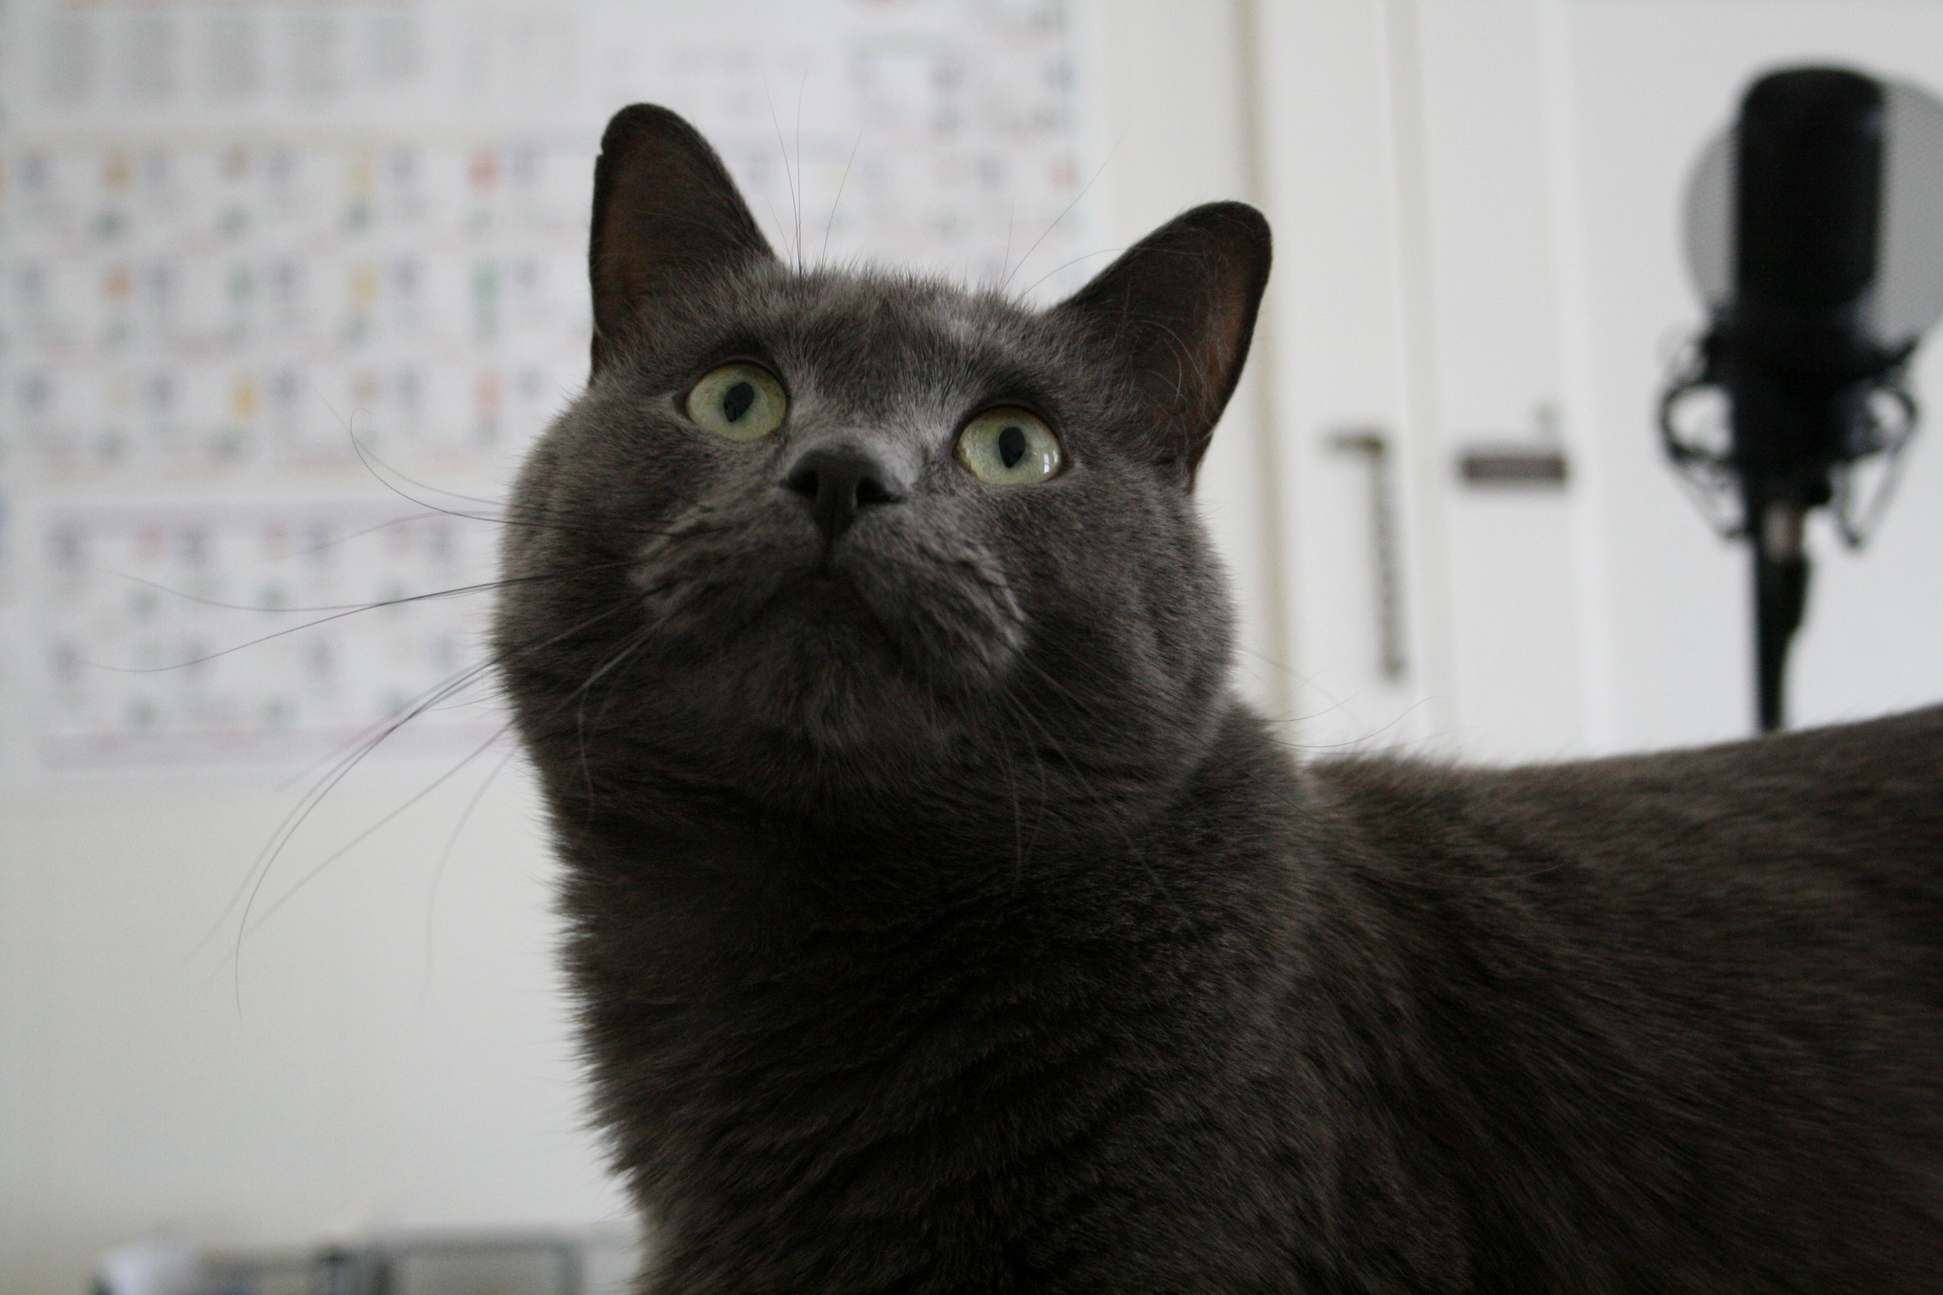 Bought a camera. now have hundreds of pictures of tutti frutti.